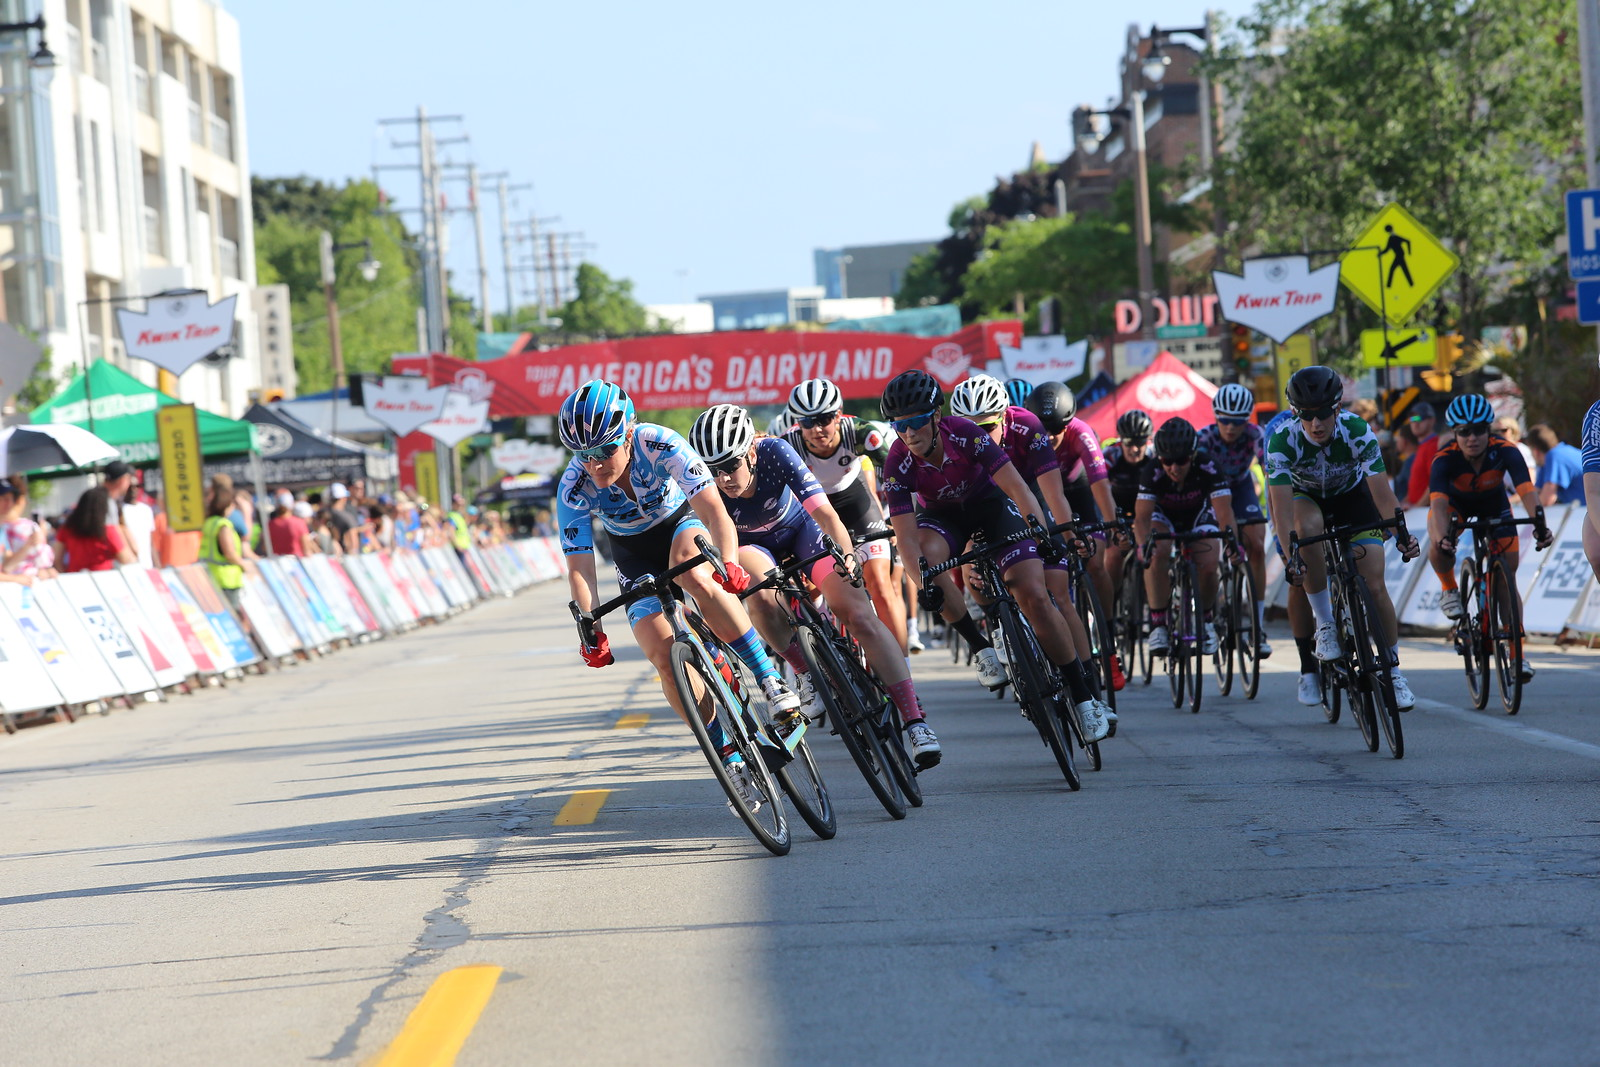 Professional Bike Racing Returns to Greendale and Manitowoc as Part of 12th Annual Tour of America's Dairyland Multi-day Road Bike Racing Series